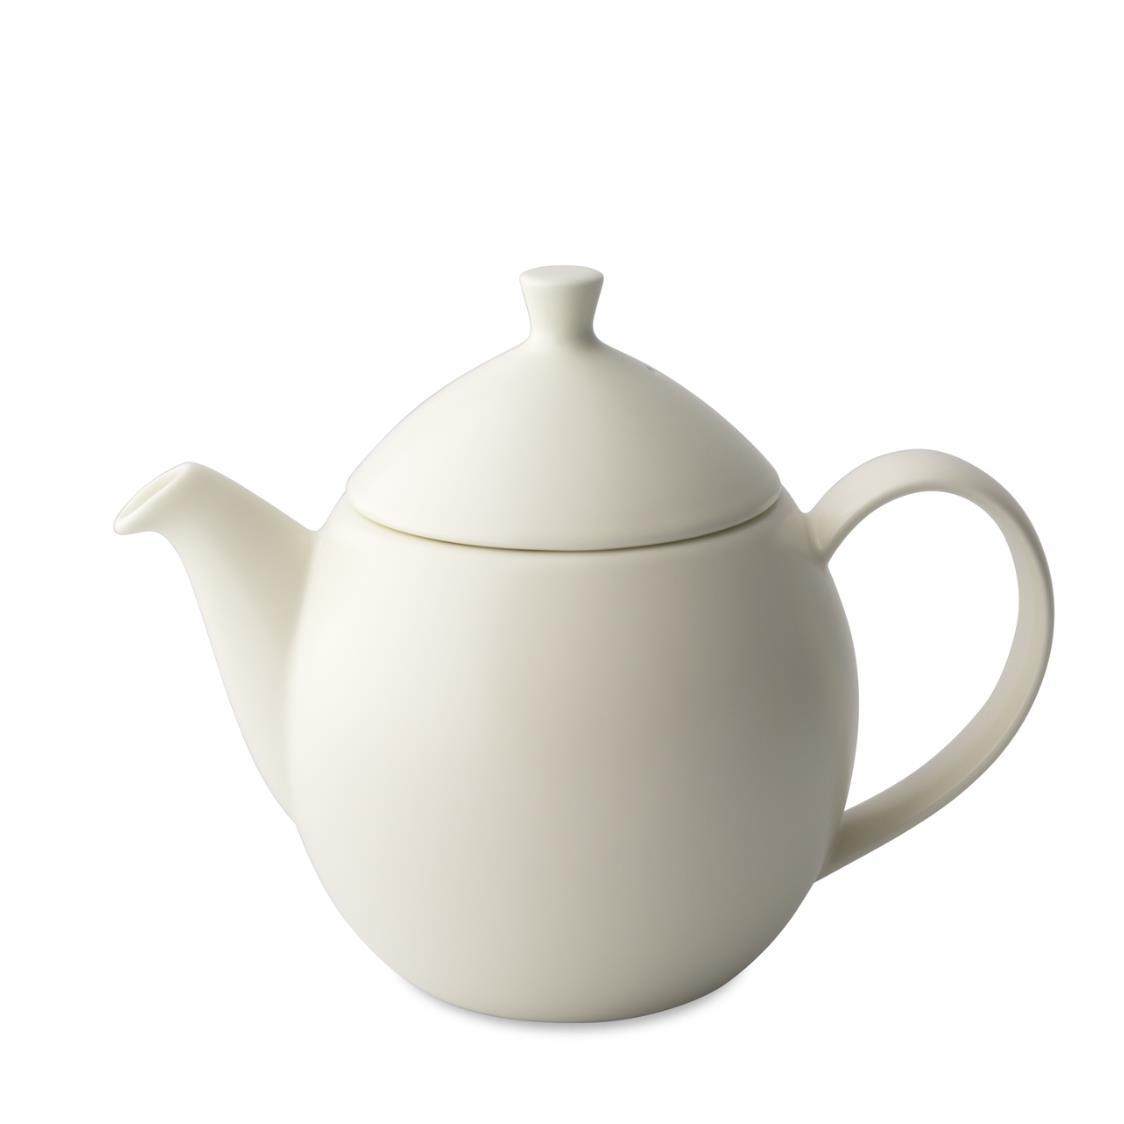 Dew Teapot with Basket Infuser 946ml FL599-NCT